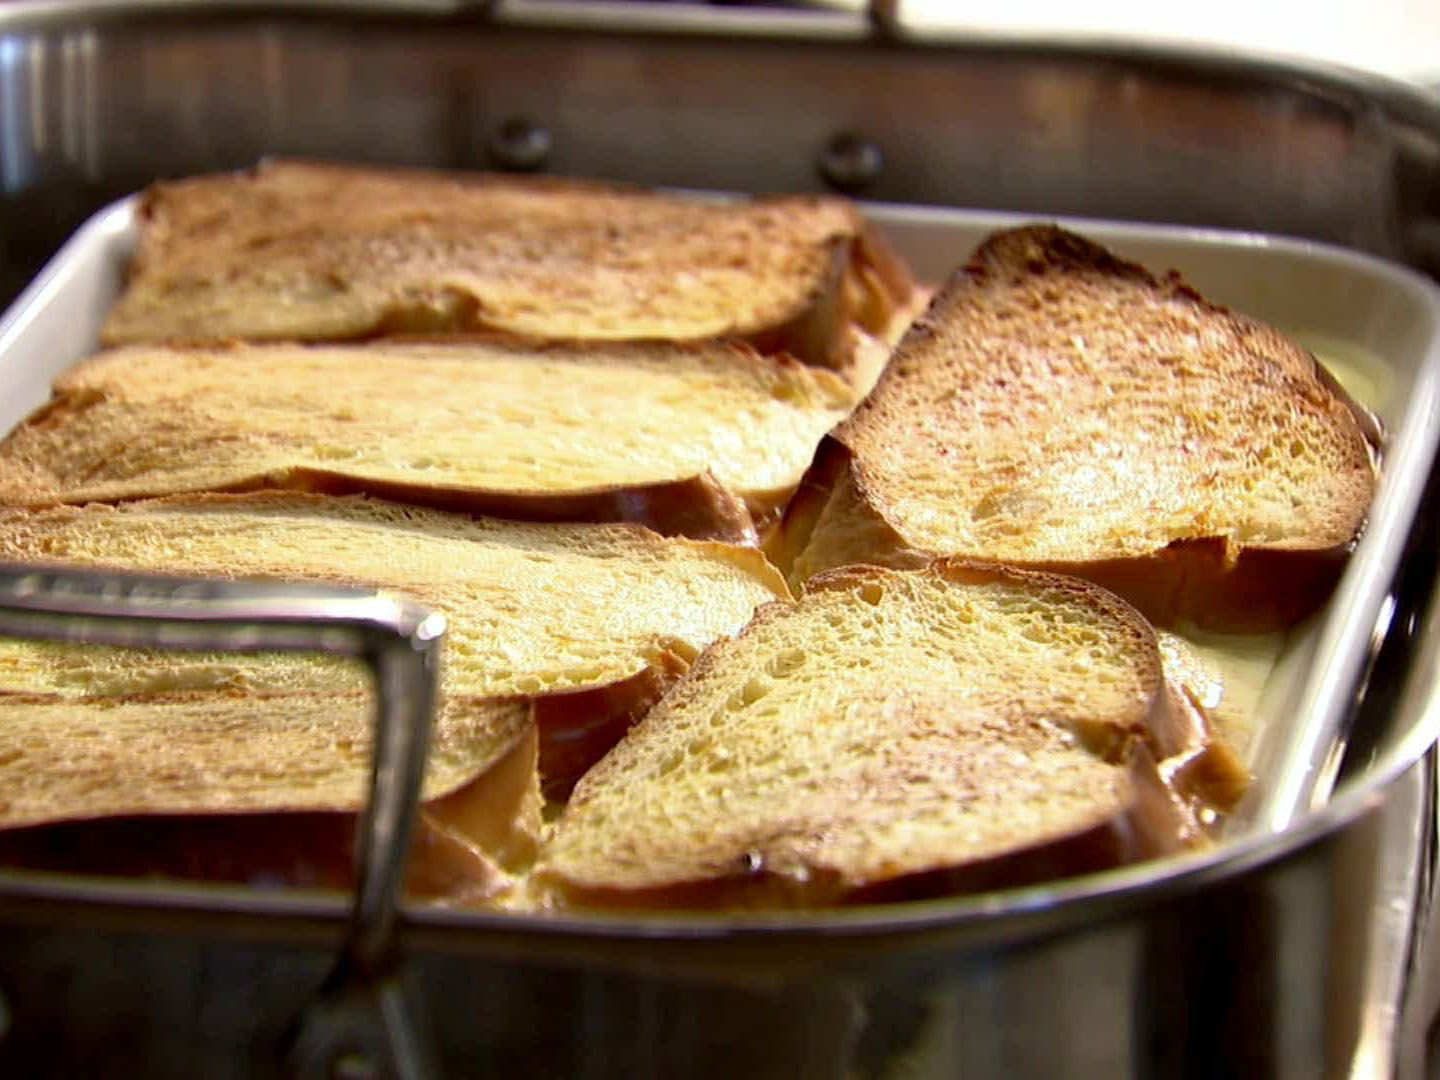 Ina Garten Recipes French Toast Bread Pudding Recipe Ina Garten Barefoot